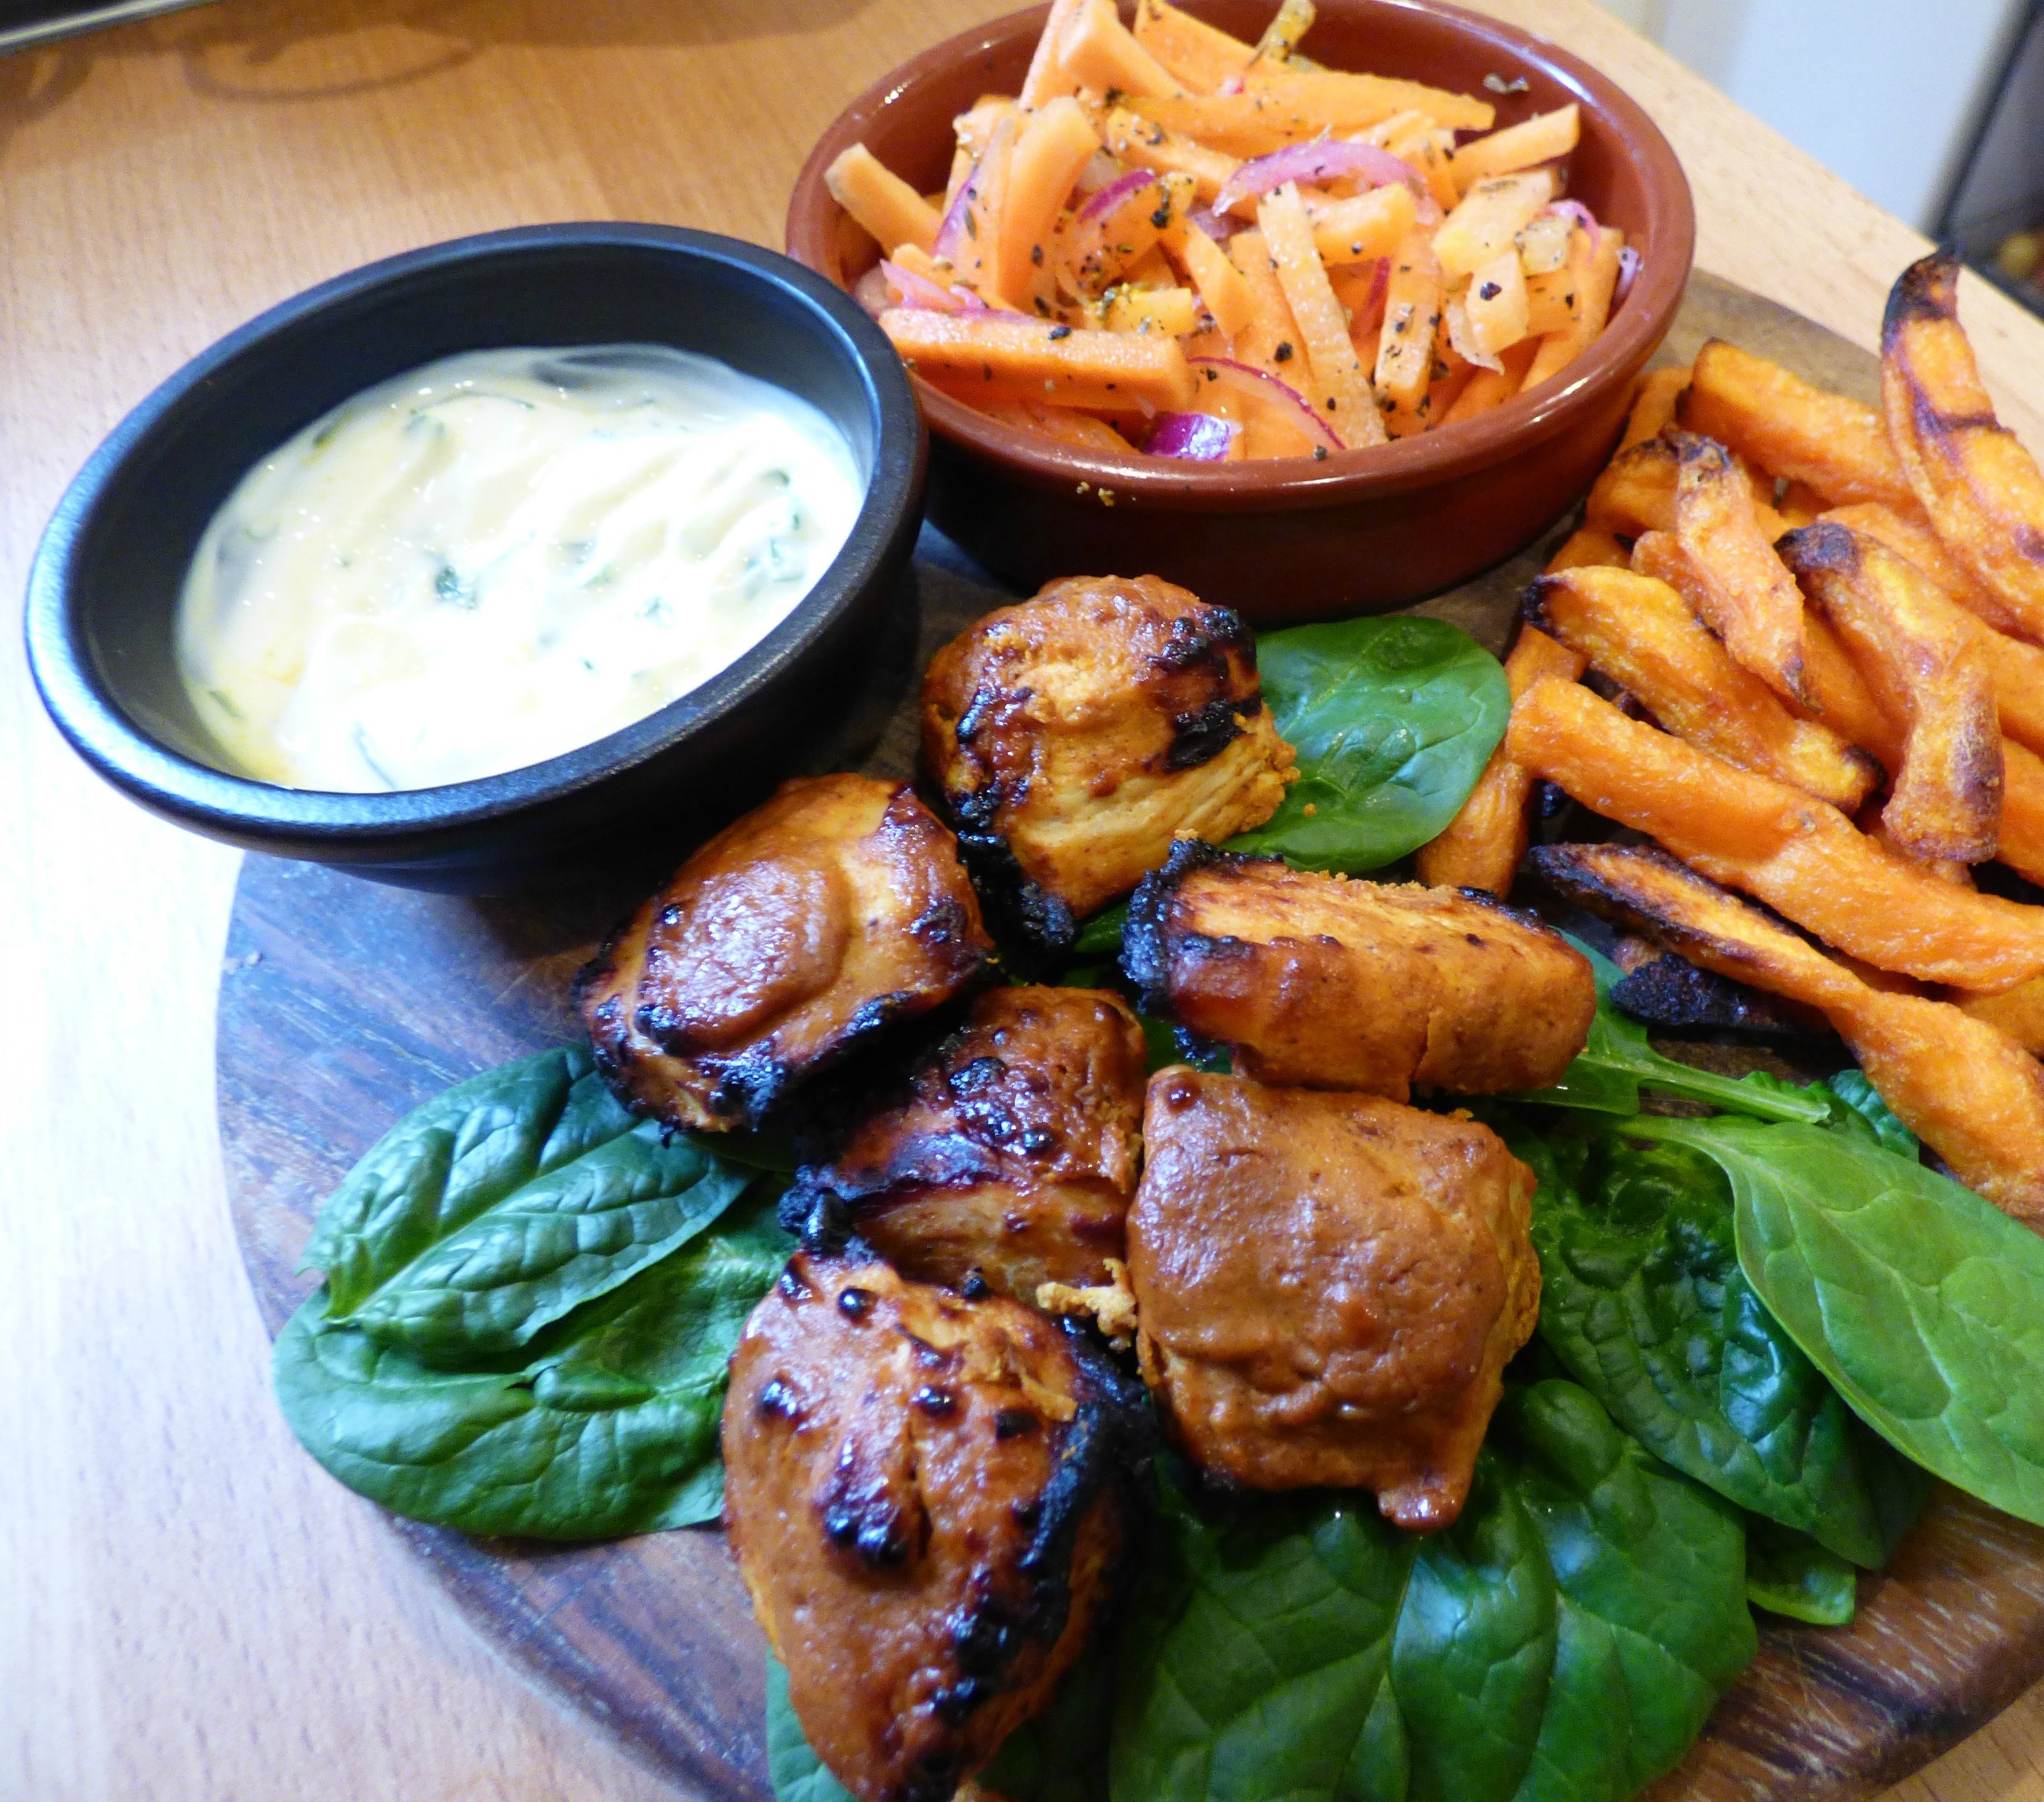 Slimming World syn free Chicken Tikka Bites and Indian Carrot Salad